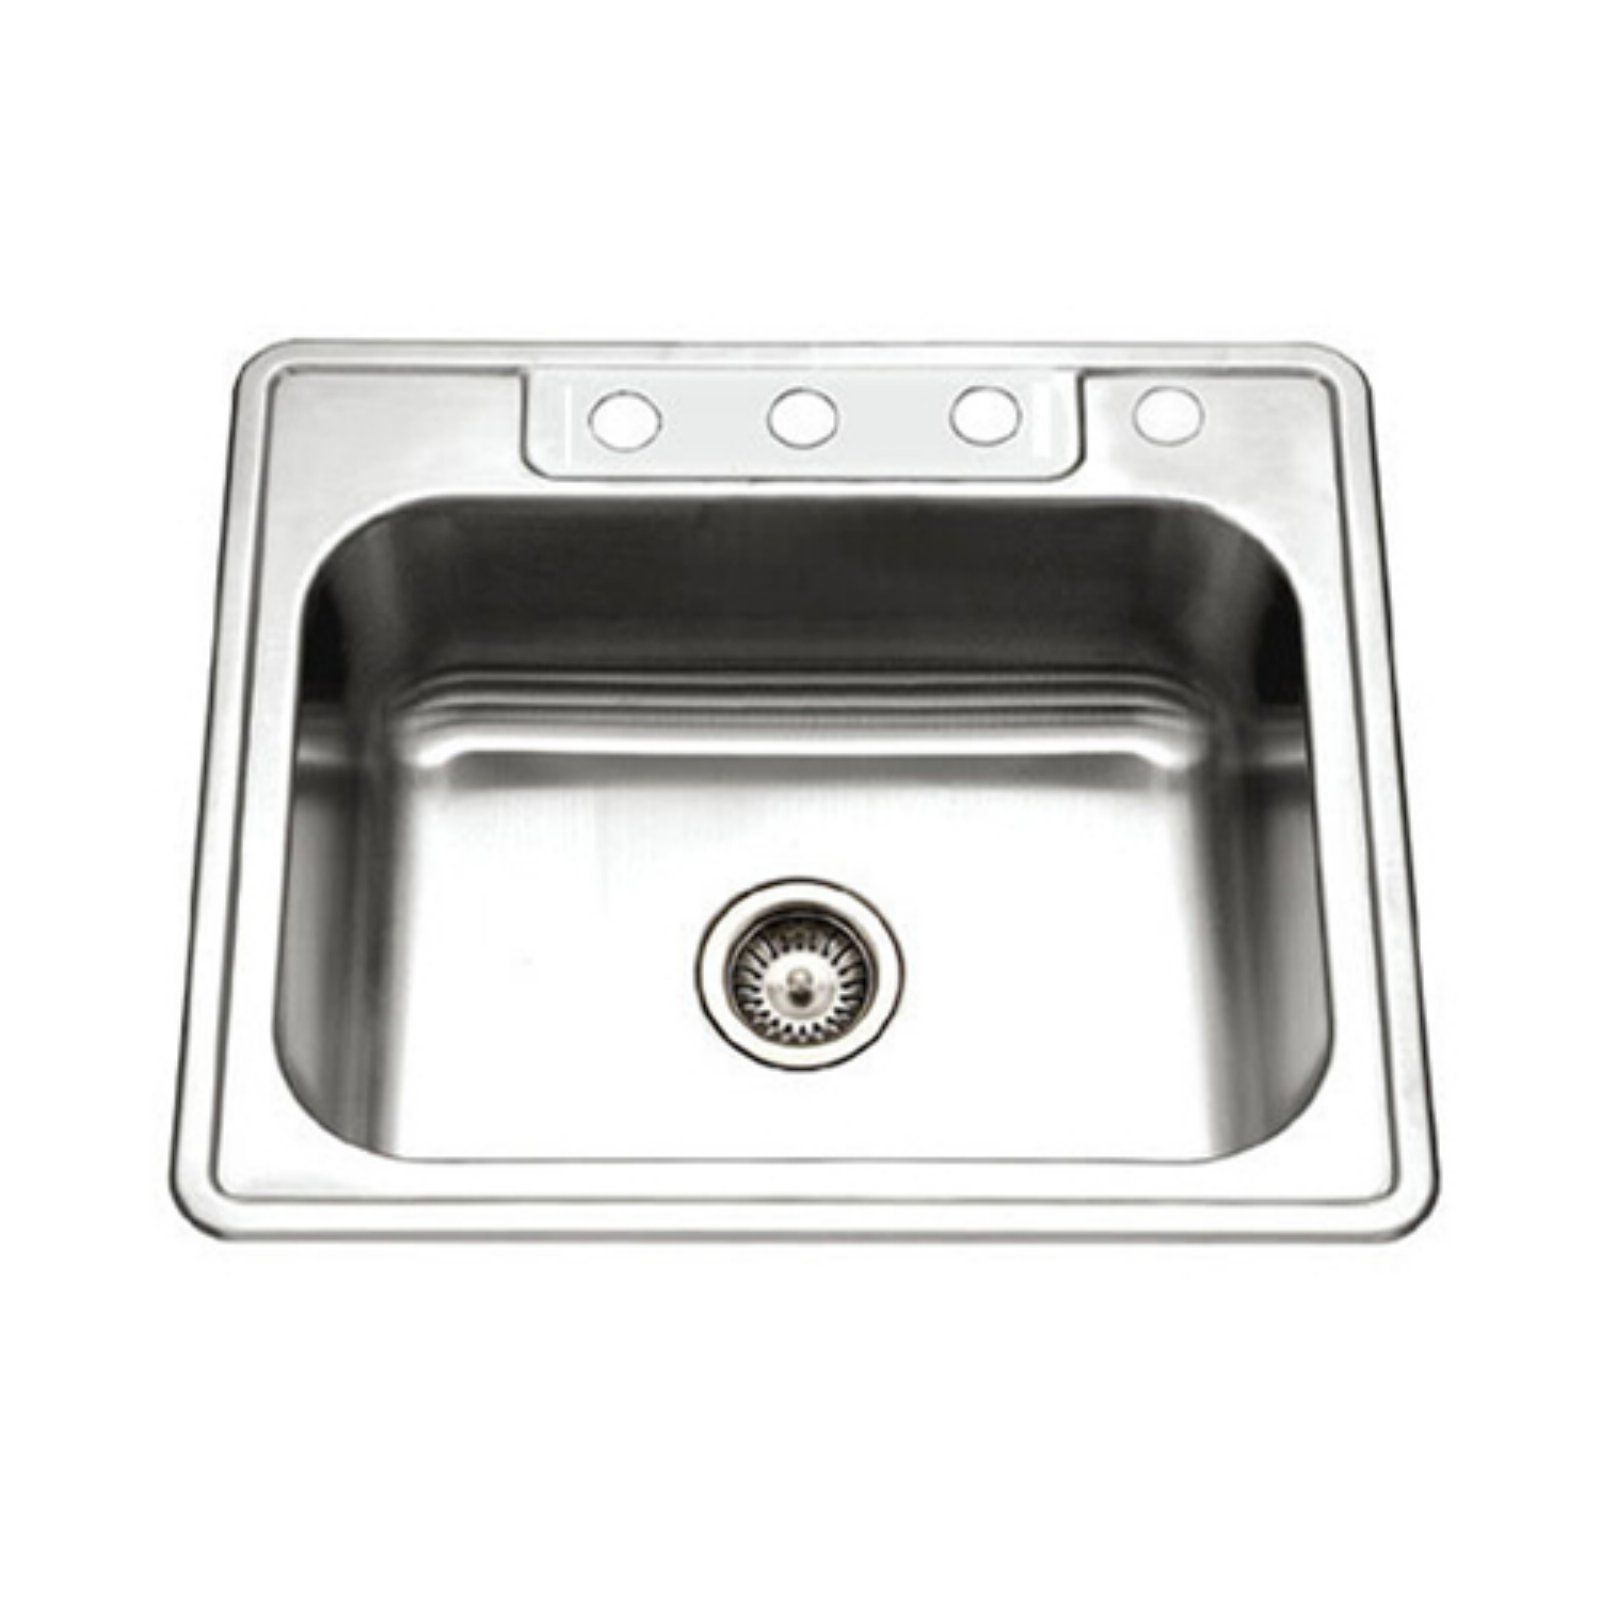 Houzer Glowtone 2522 8bs4 1 Single Basin Drop In Kitchen Sink